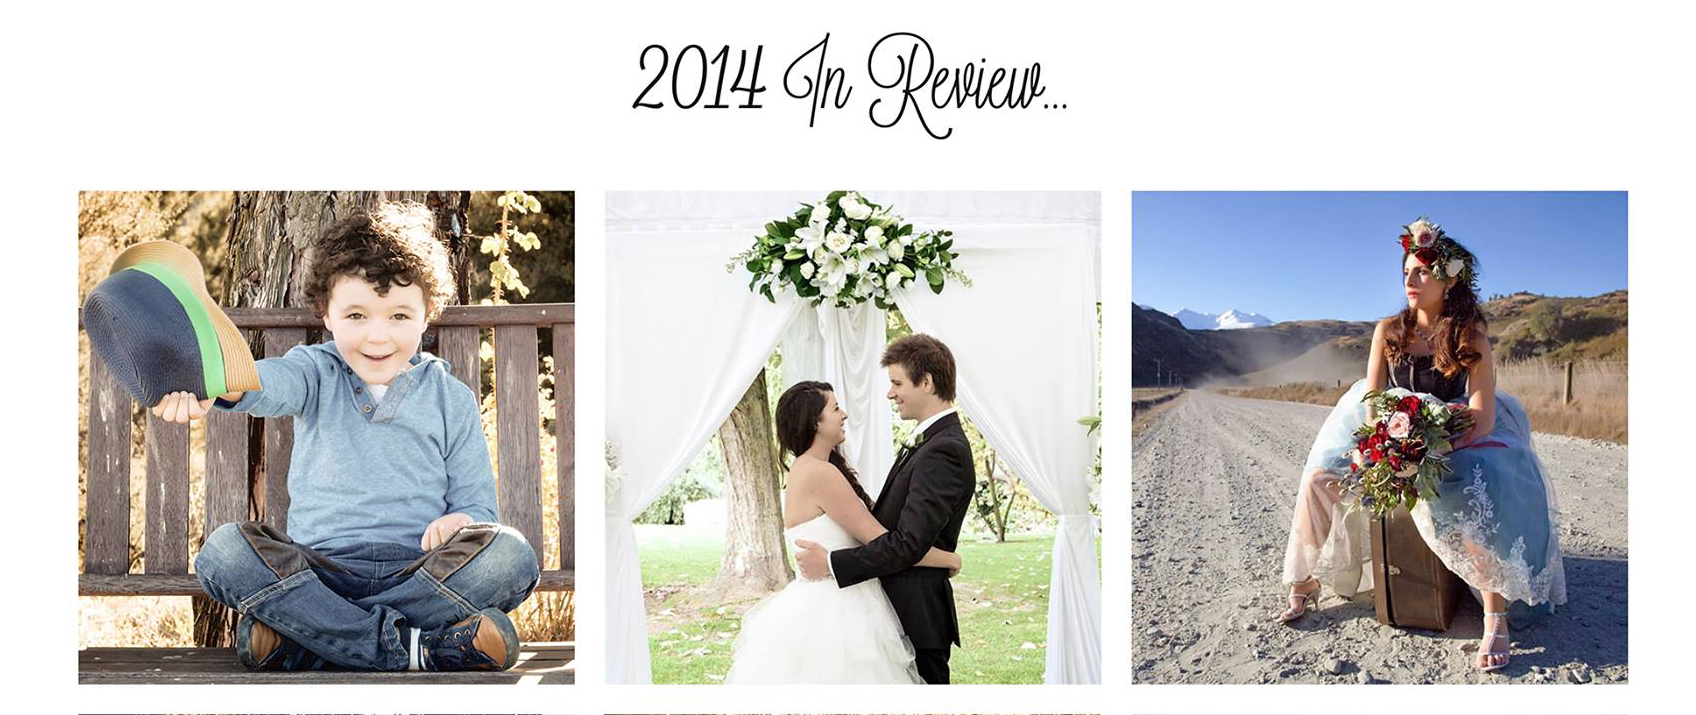 a-photographic-year-in-review-2014-small.jpg